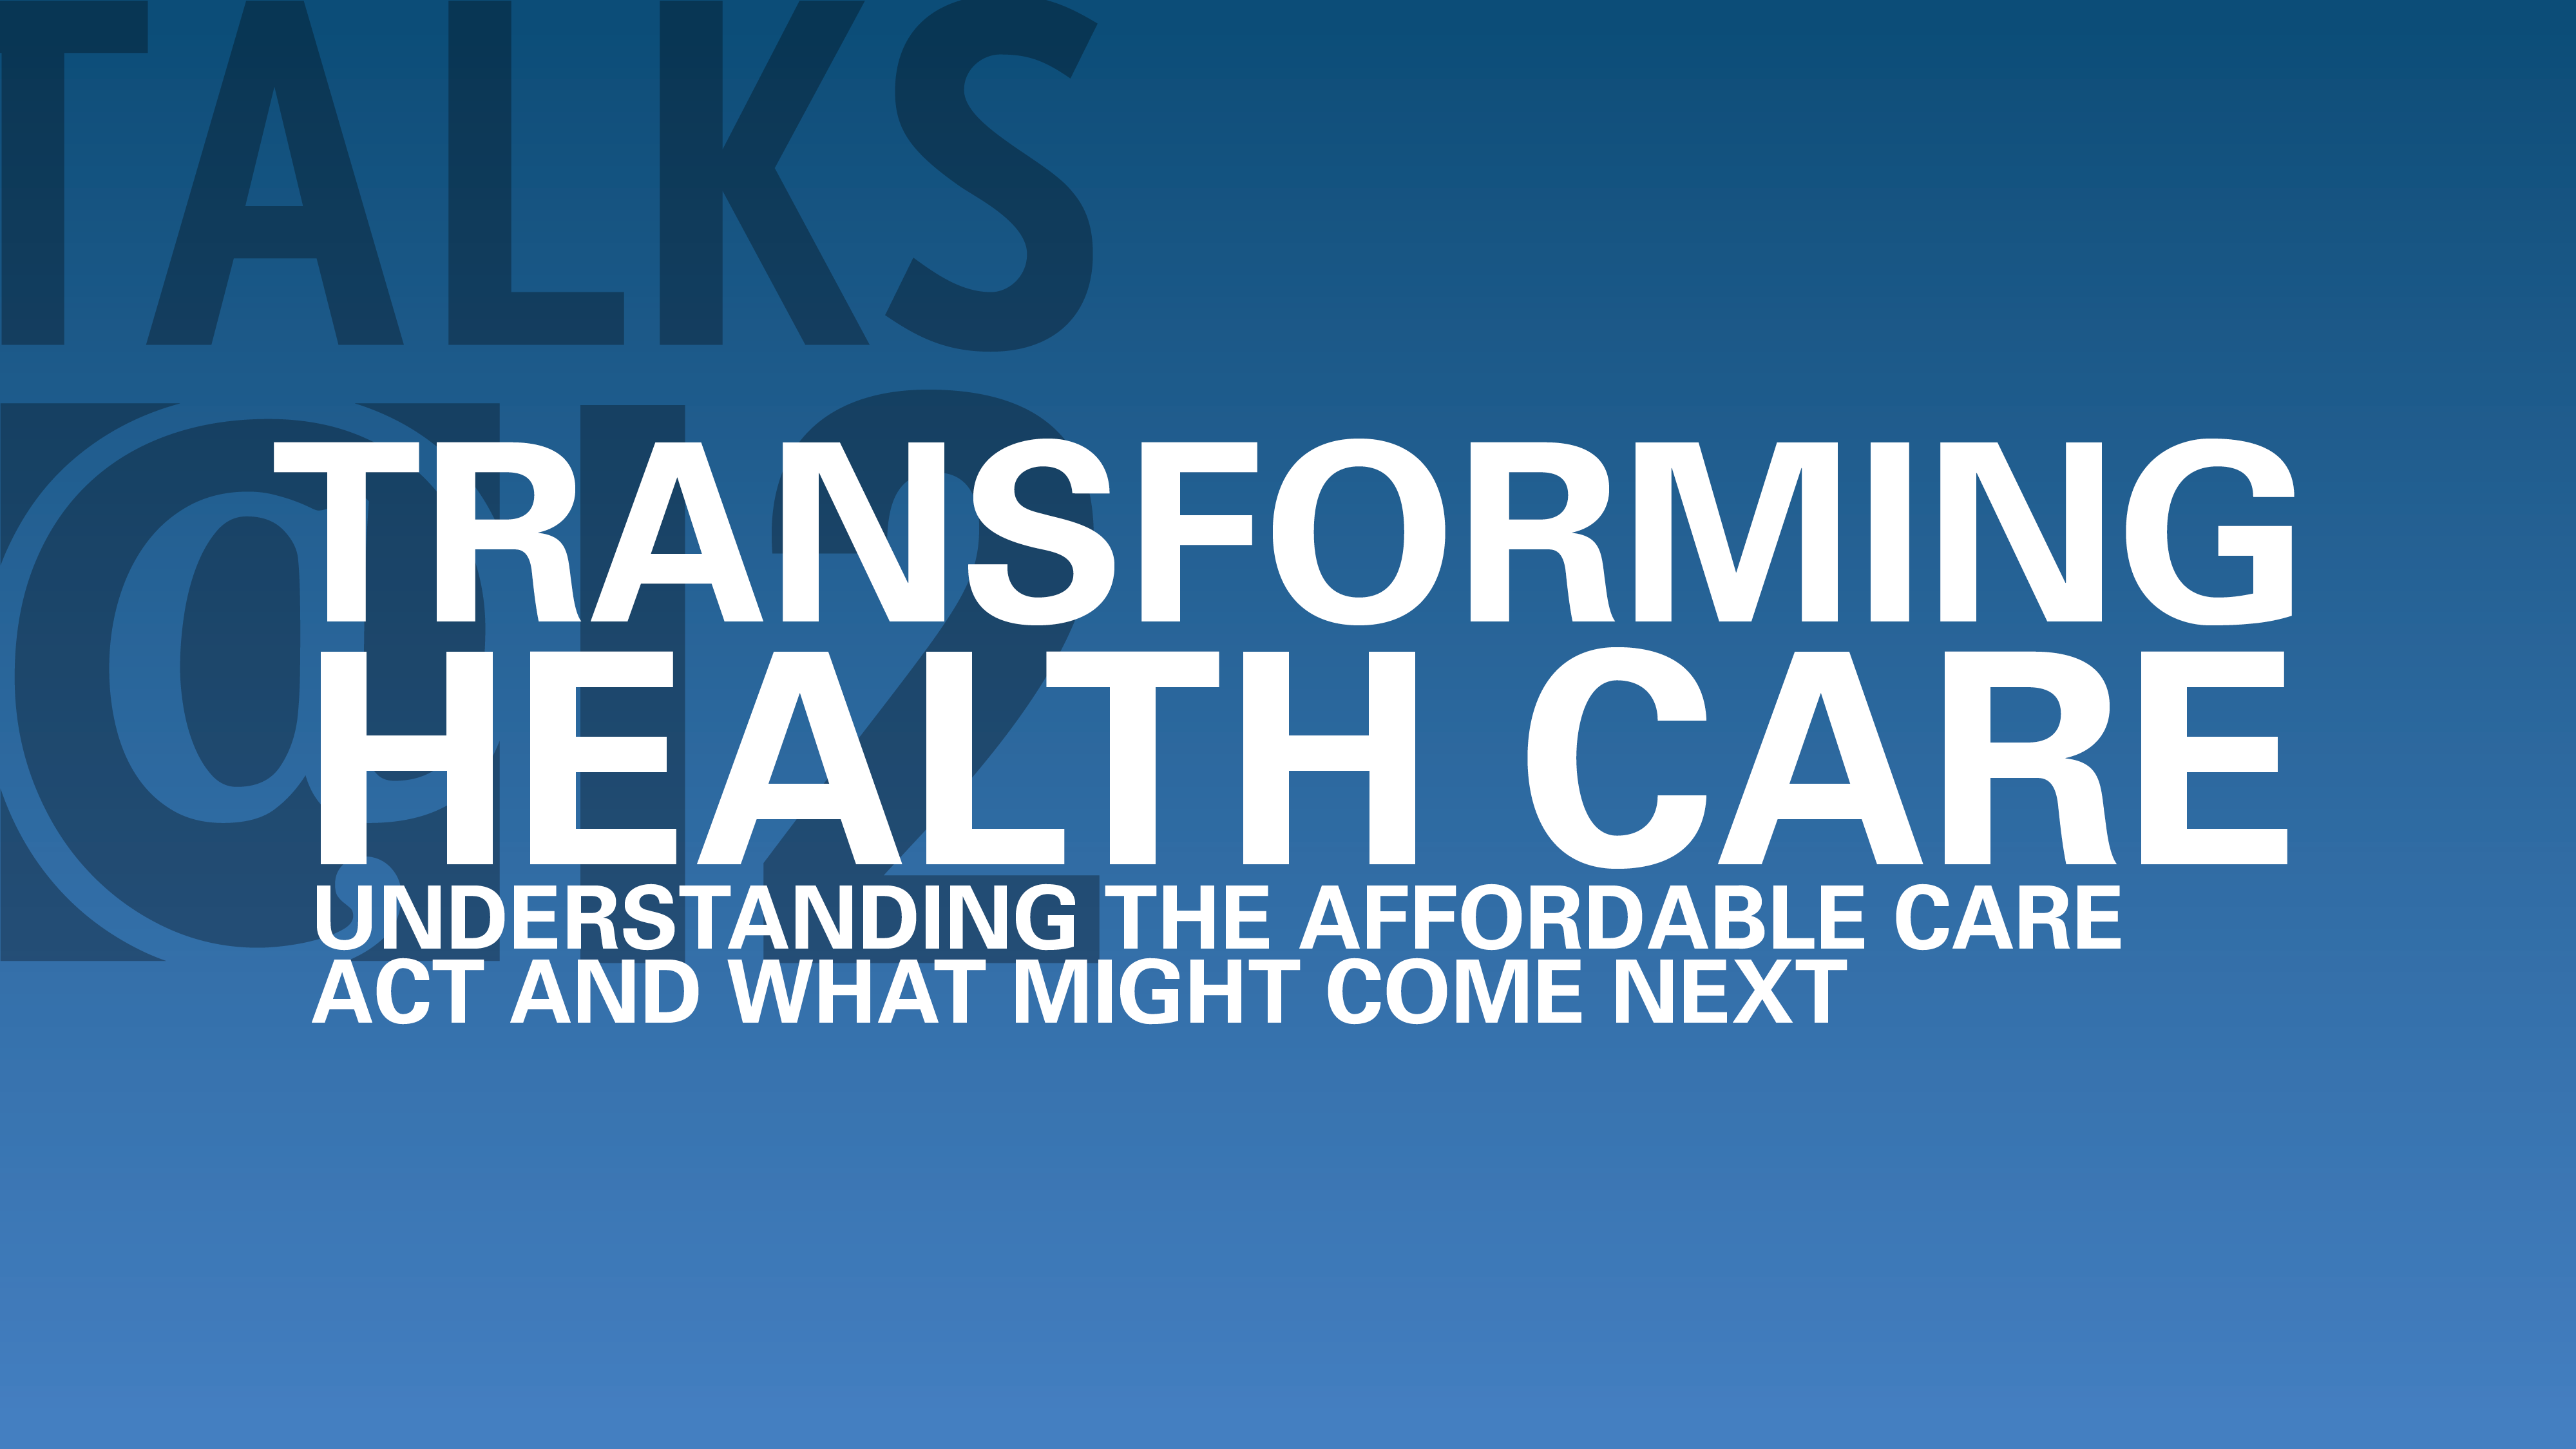 Transforming Health Care: Understanding the Affordable Care Act and what might come next